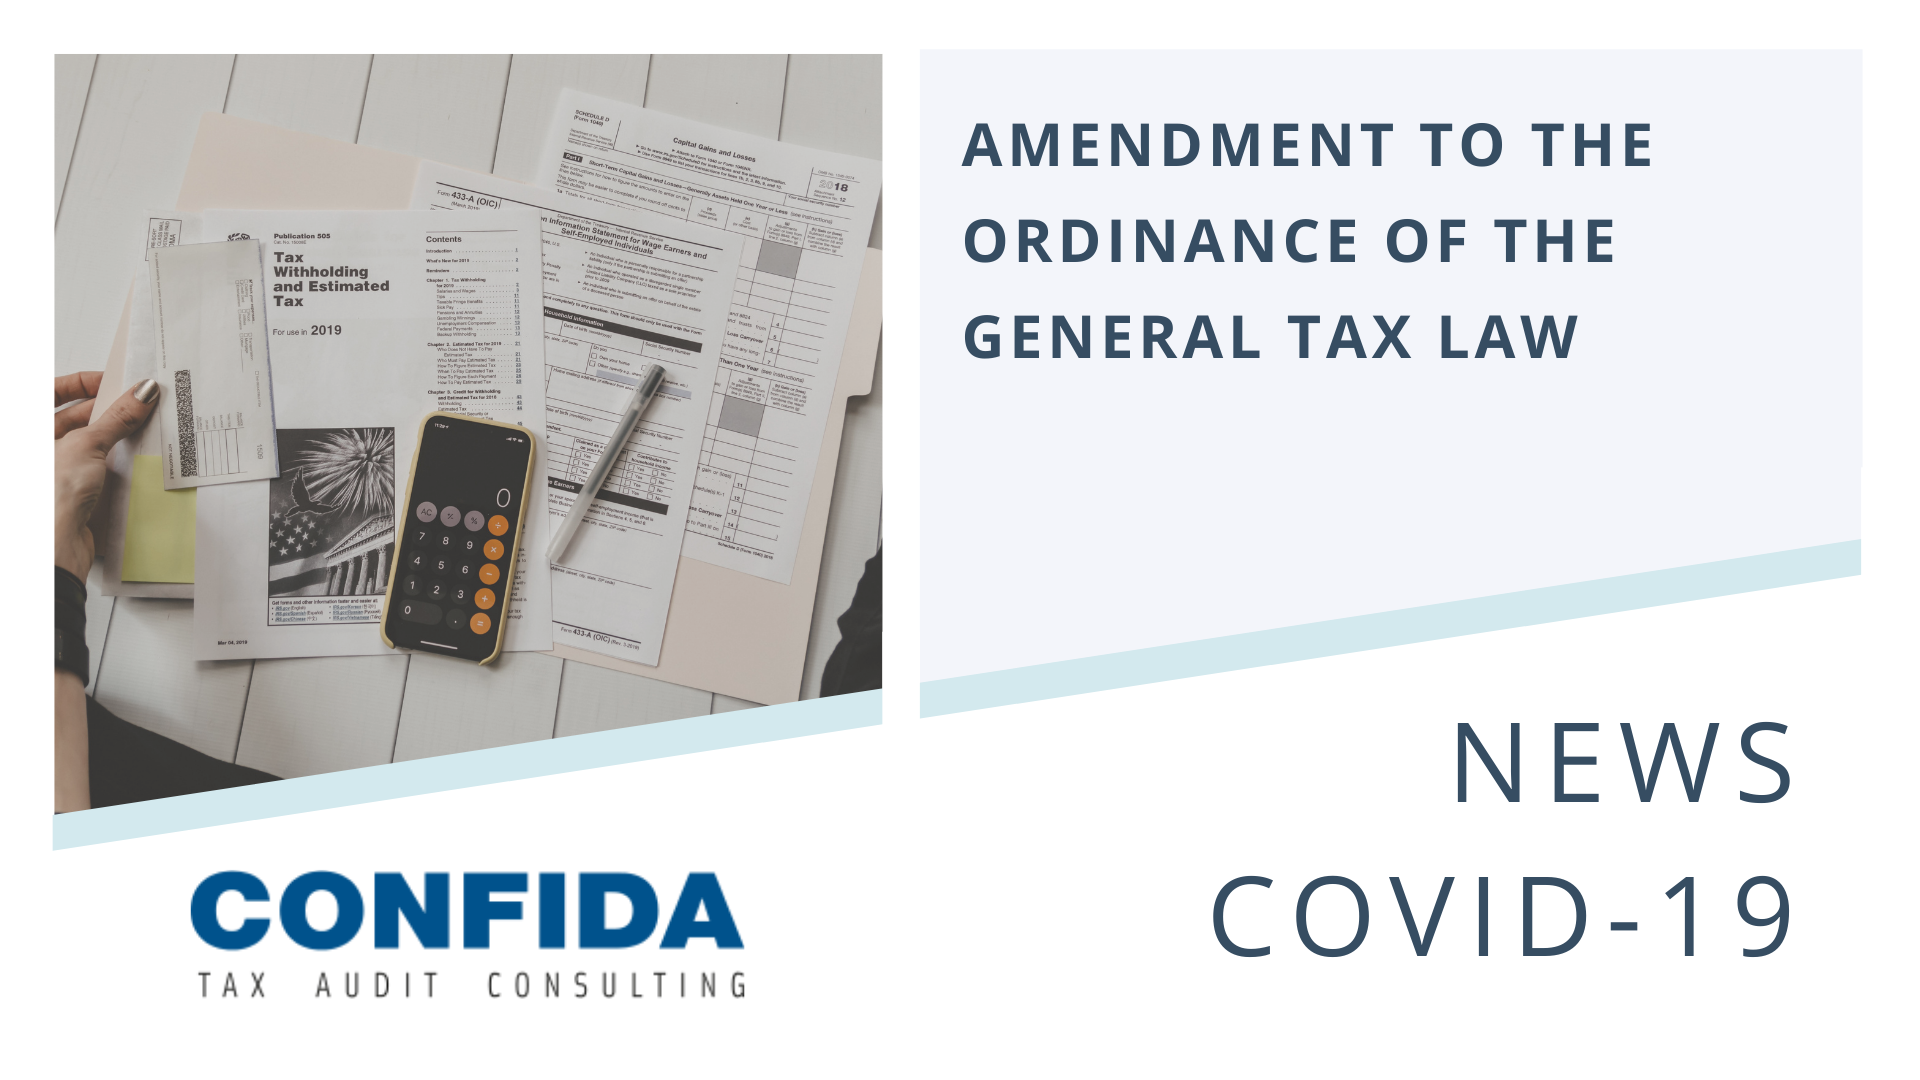 Amendment to the Ordinance of the General Tax Law